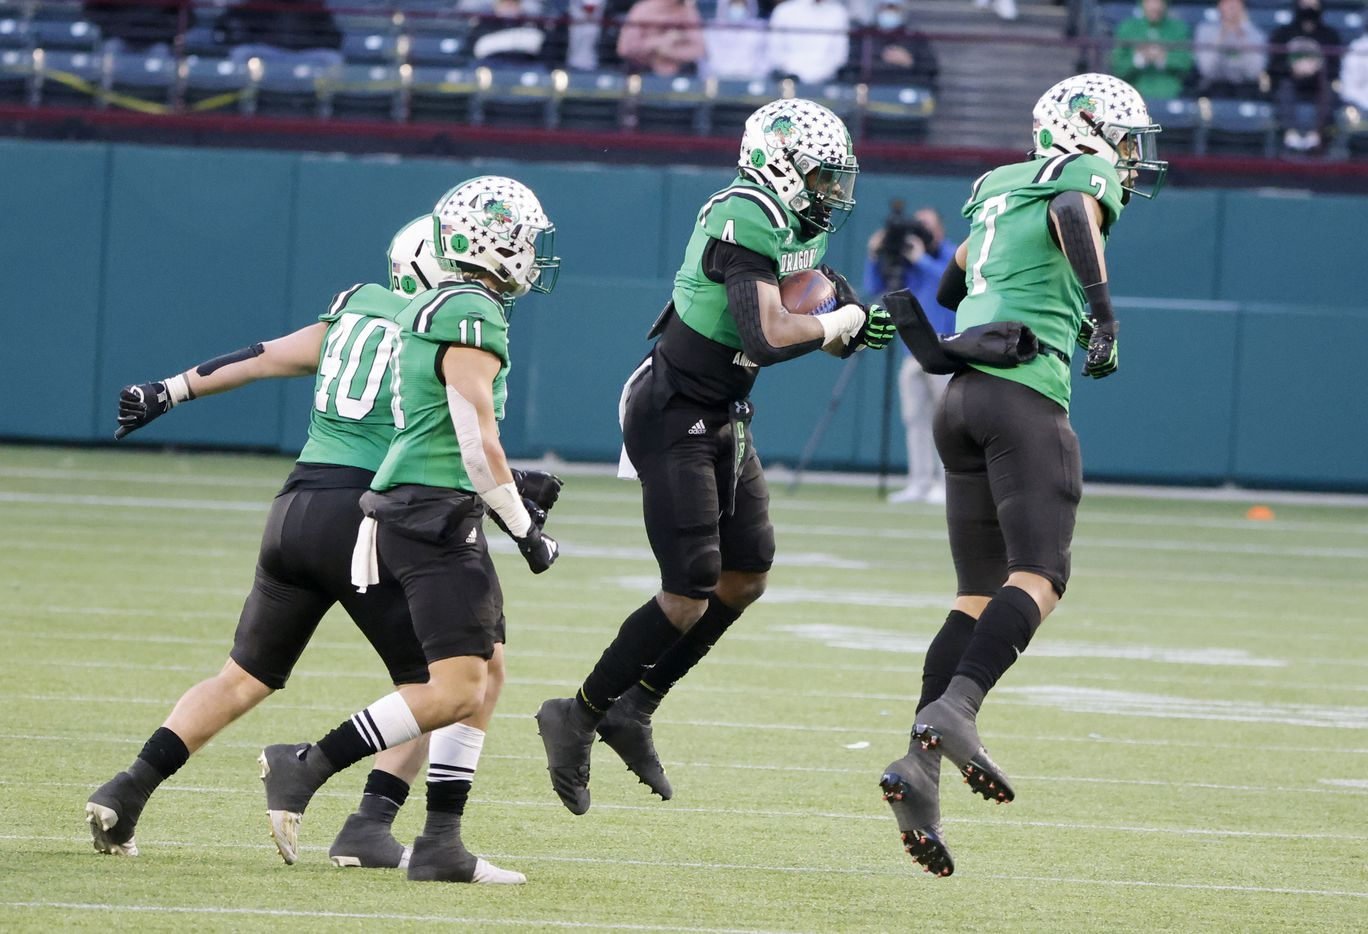 Southlake's Cinque Williams (4) celebrates his interception against Duncanville with teammates during the Class 6A Division I state high school football semifinal in Arlington, Texas on Jan. 9, 2020. (Michael Ainsworth)